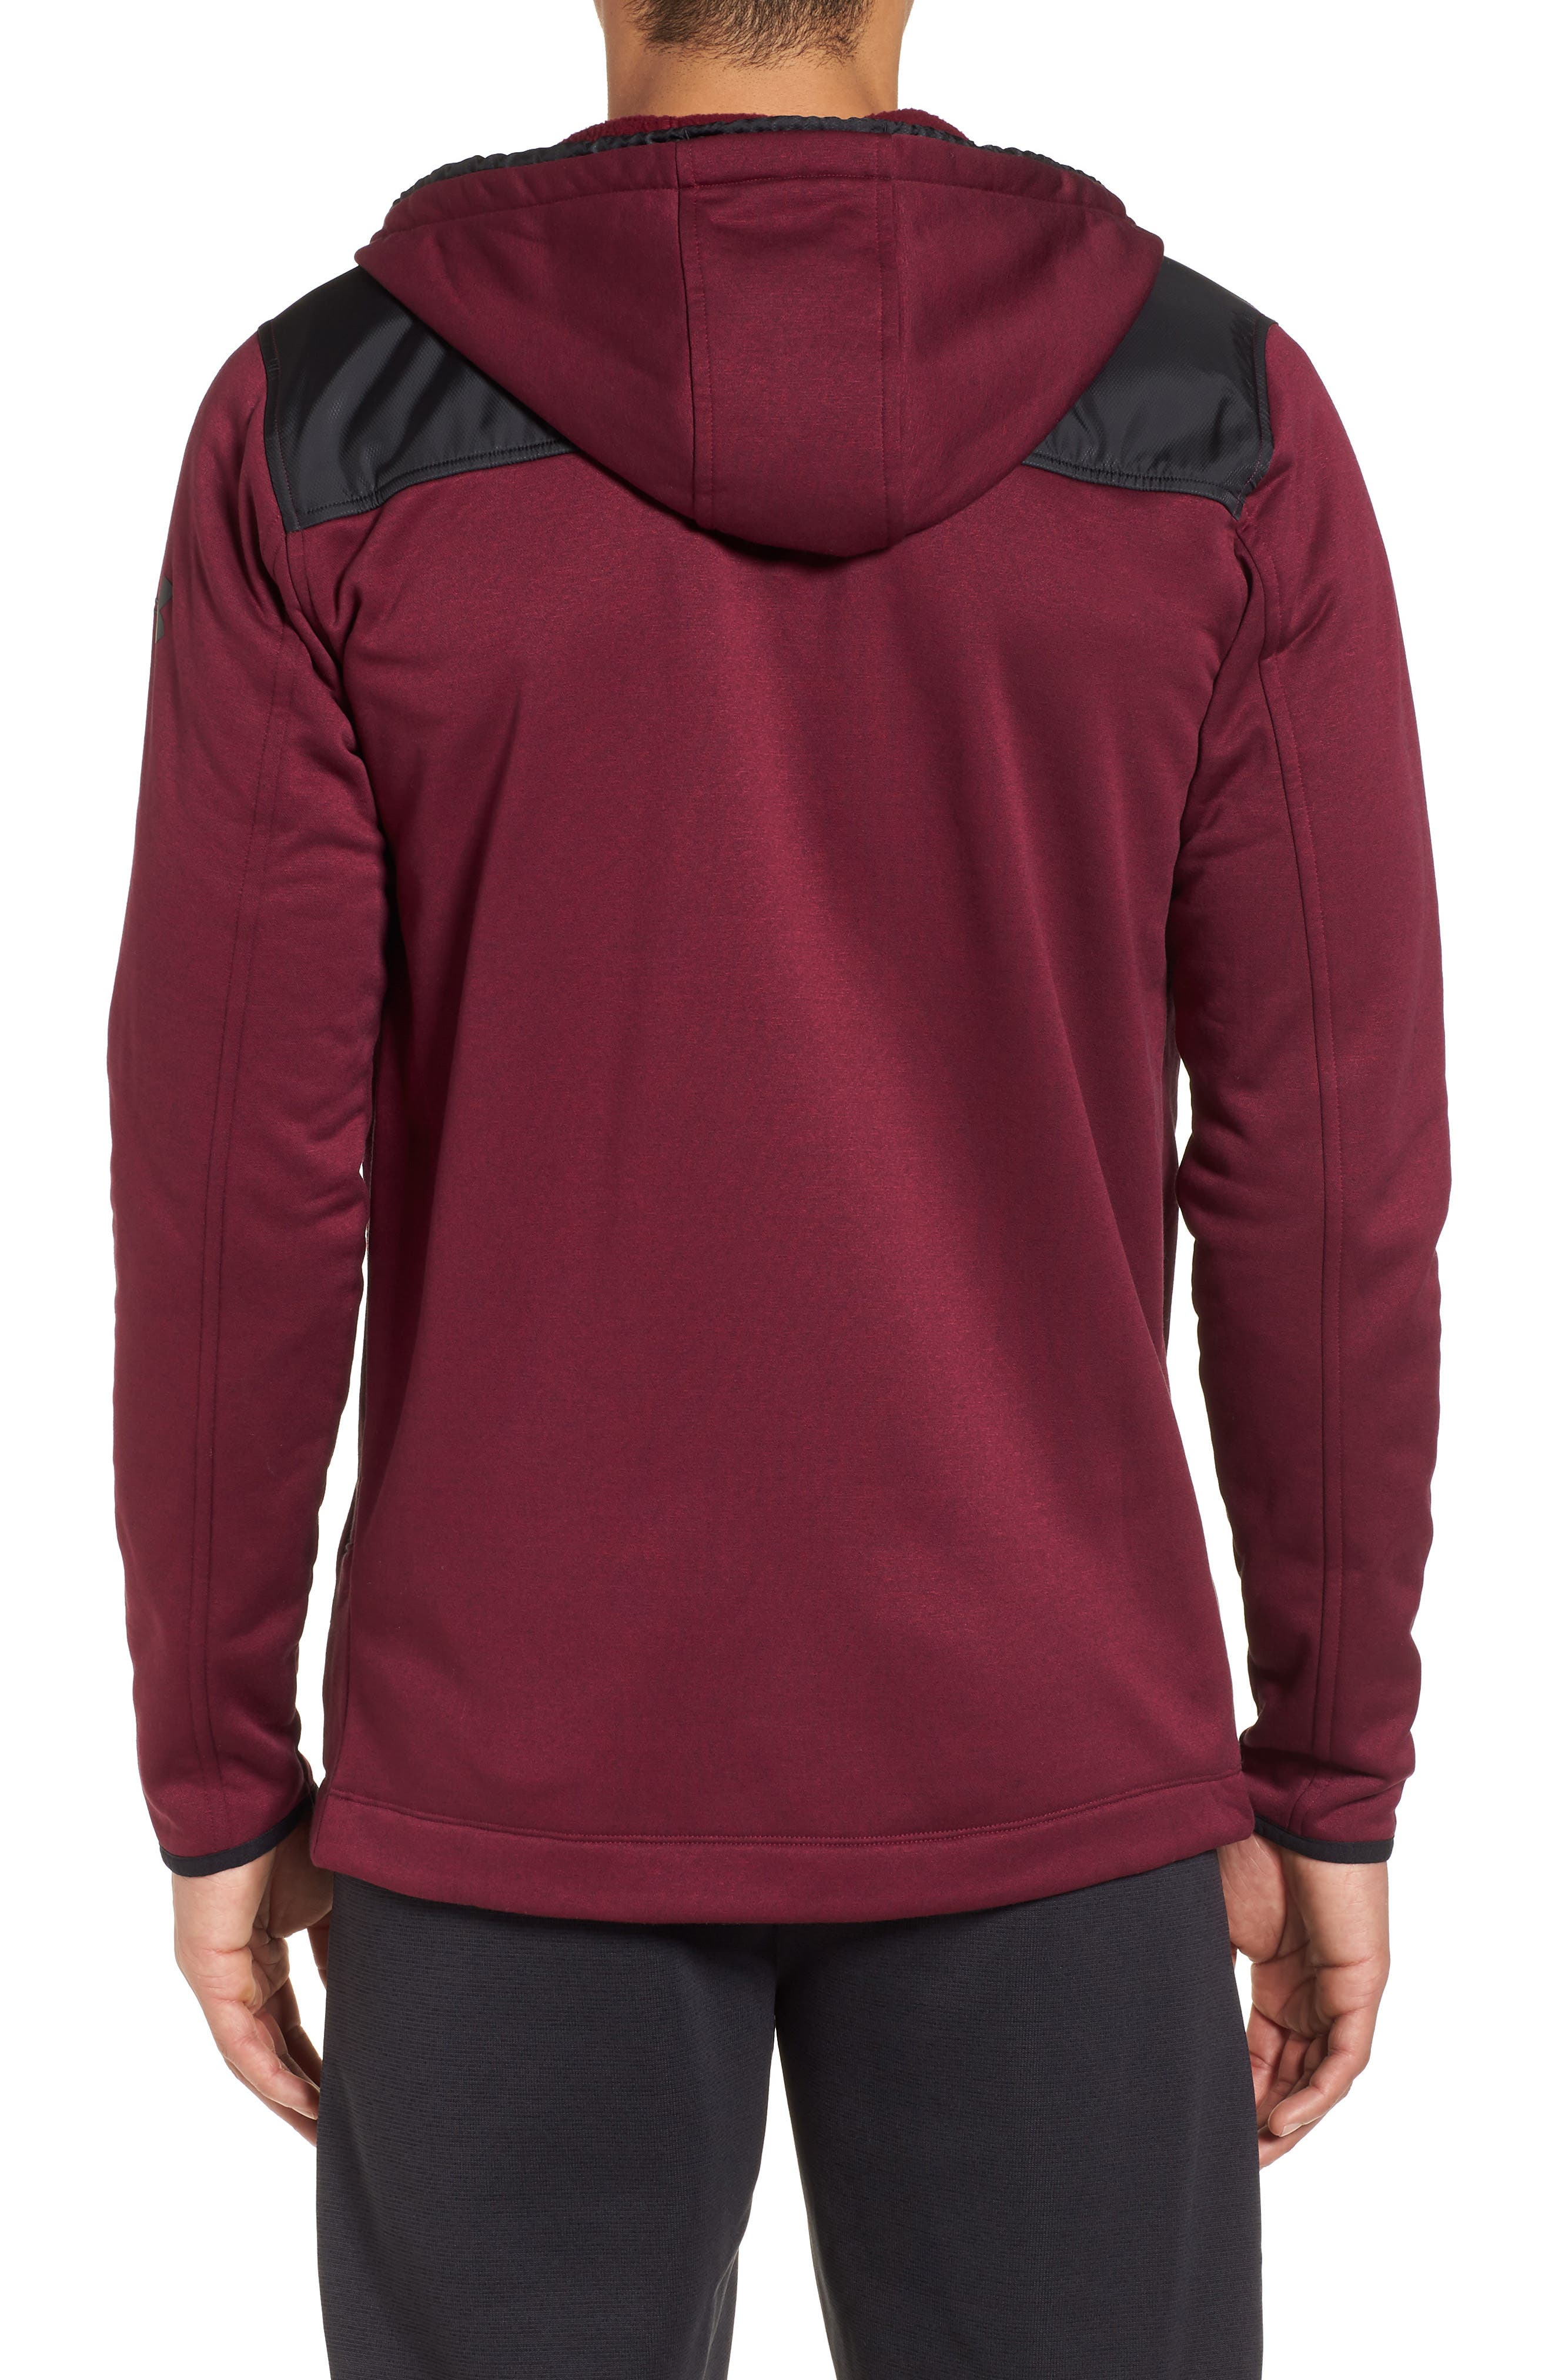 Courtside Stealth Zip Hoodie,                             Alternate thumbnail 2, color,                             Black Currant / Black